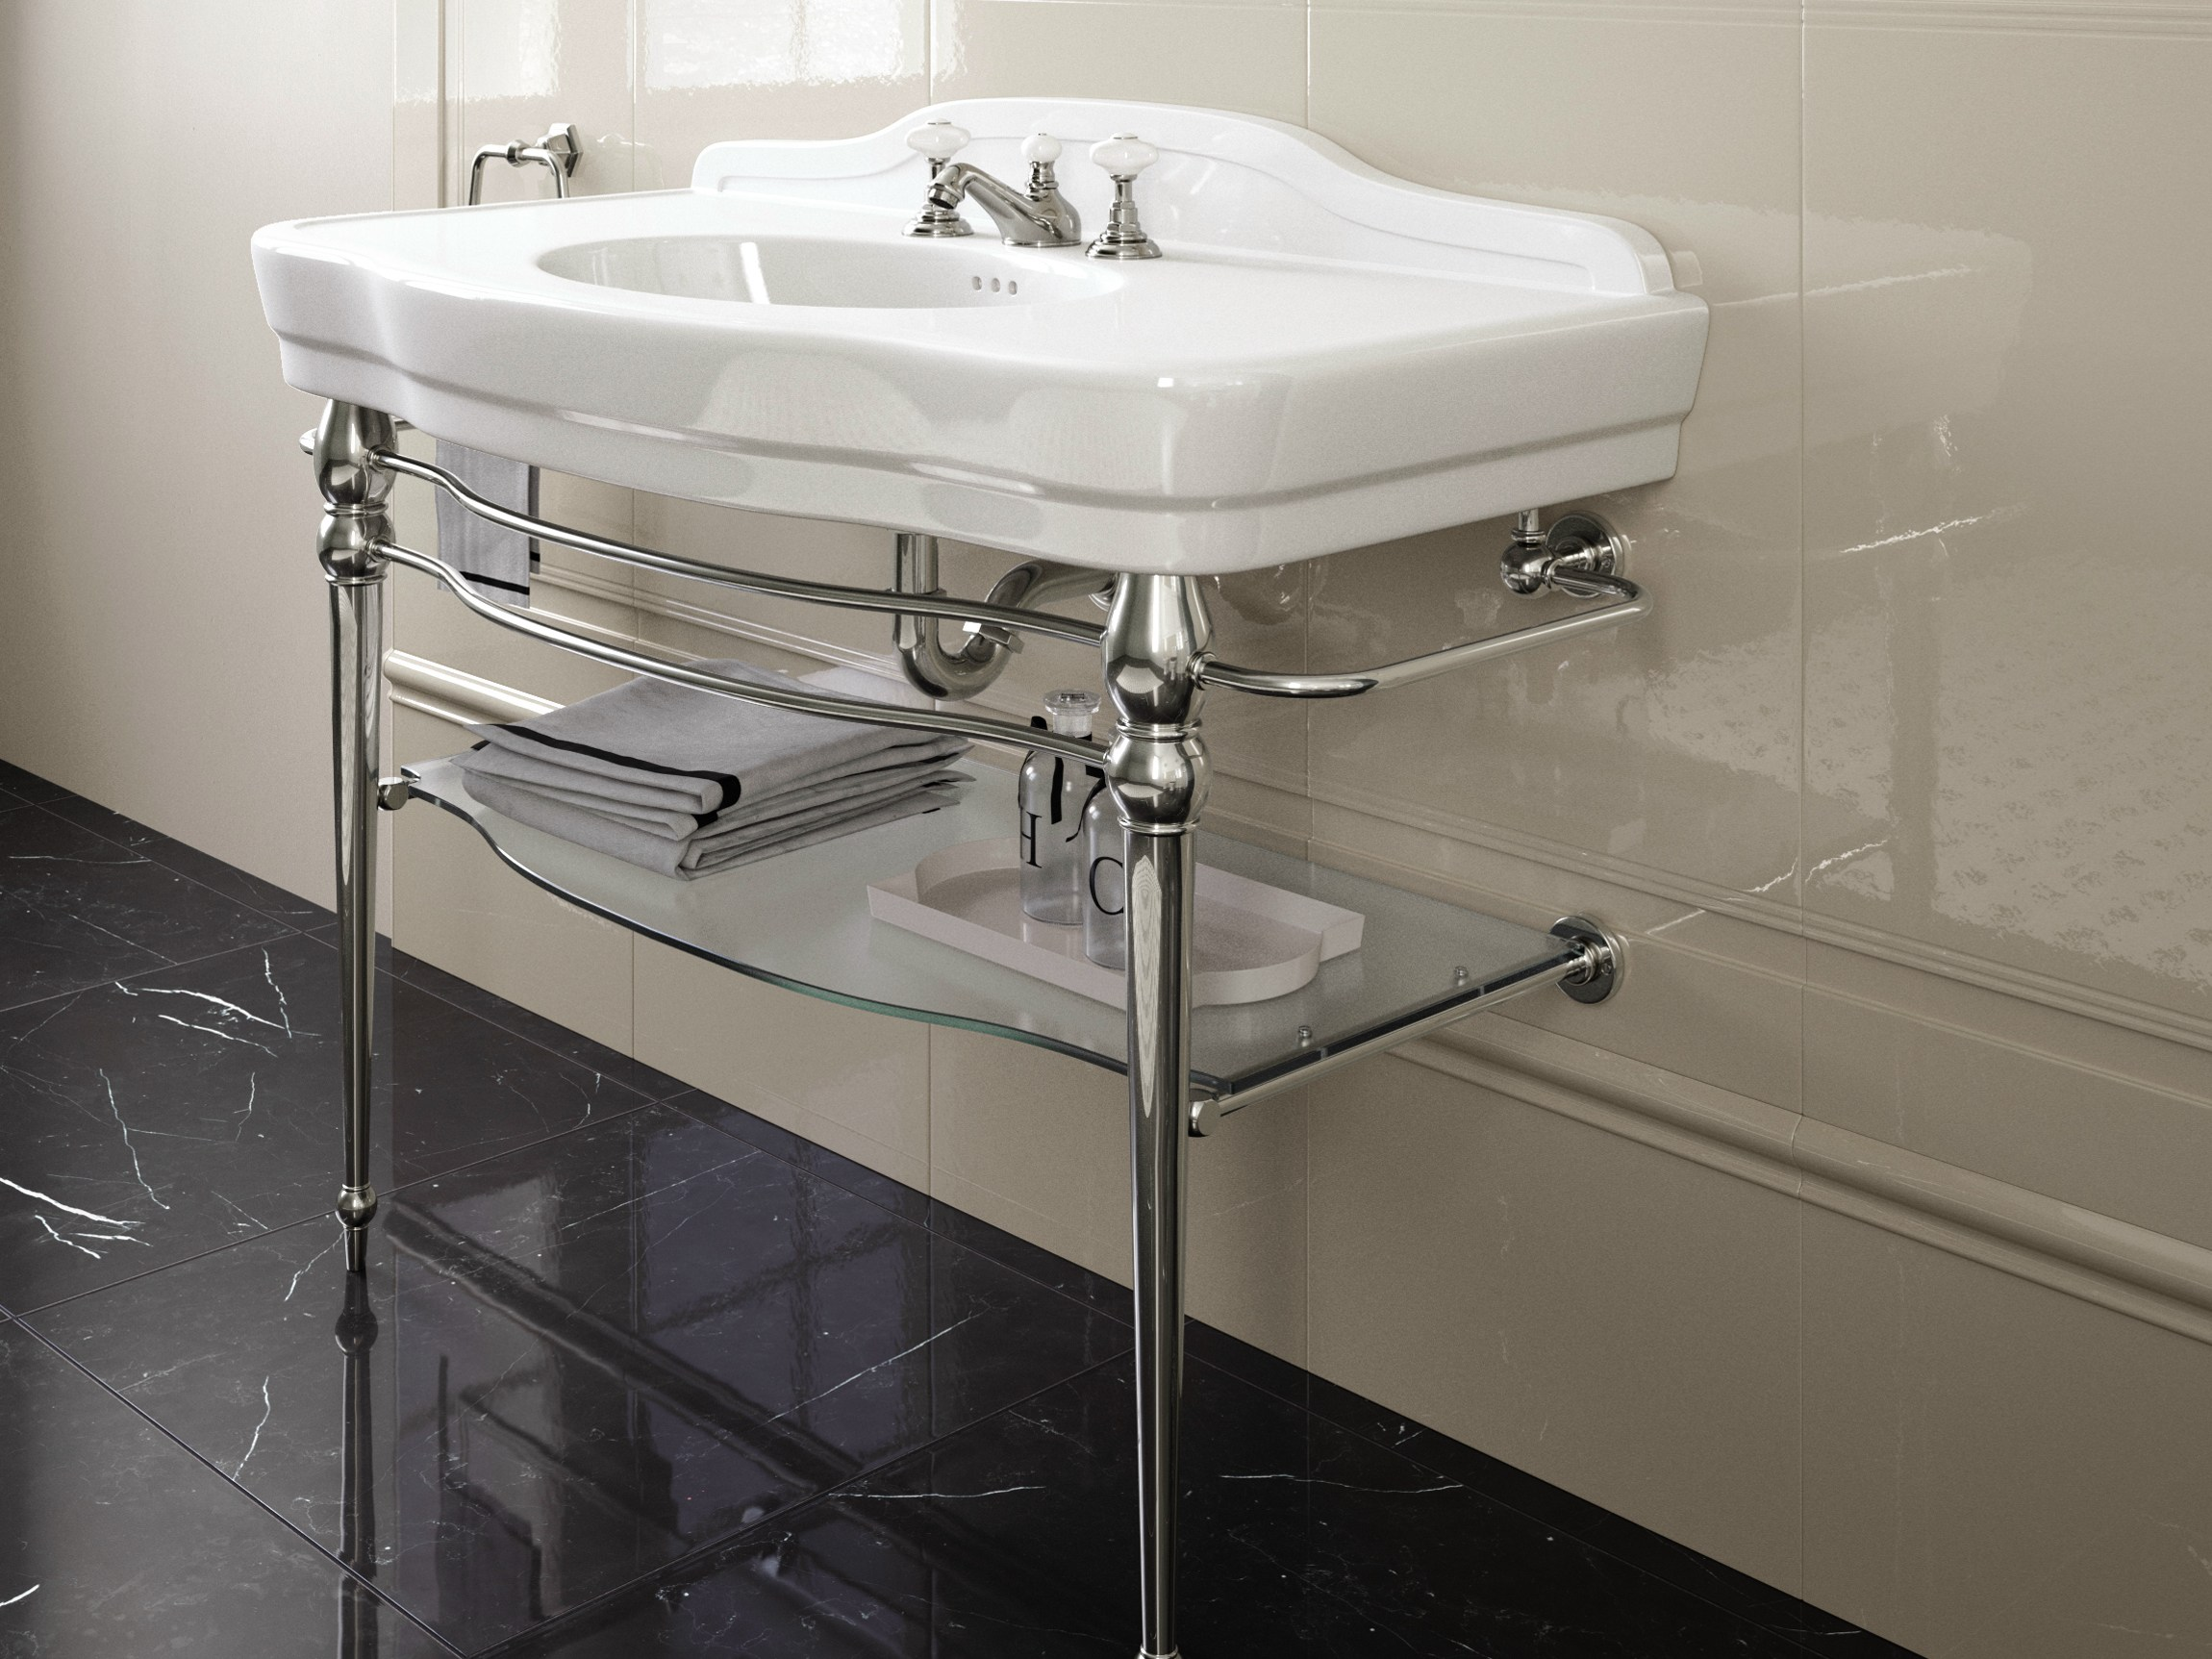 console washbasin with towel rail melody by devon devon. Black Bedroom Furniture Sets. Home Design Ideas